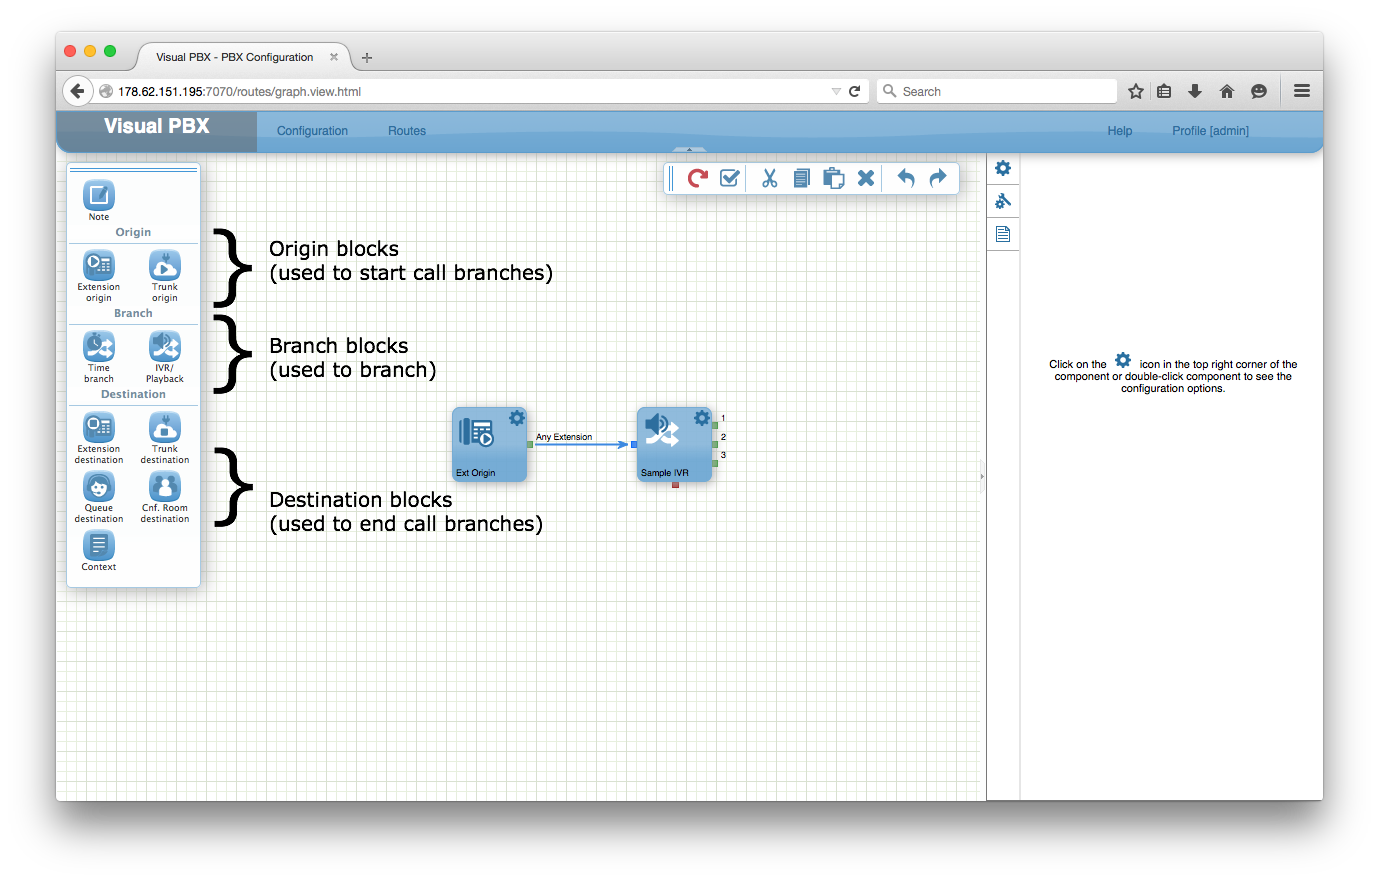 VisualPBX routing